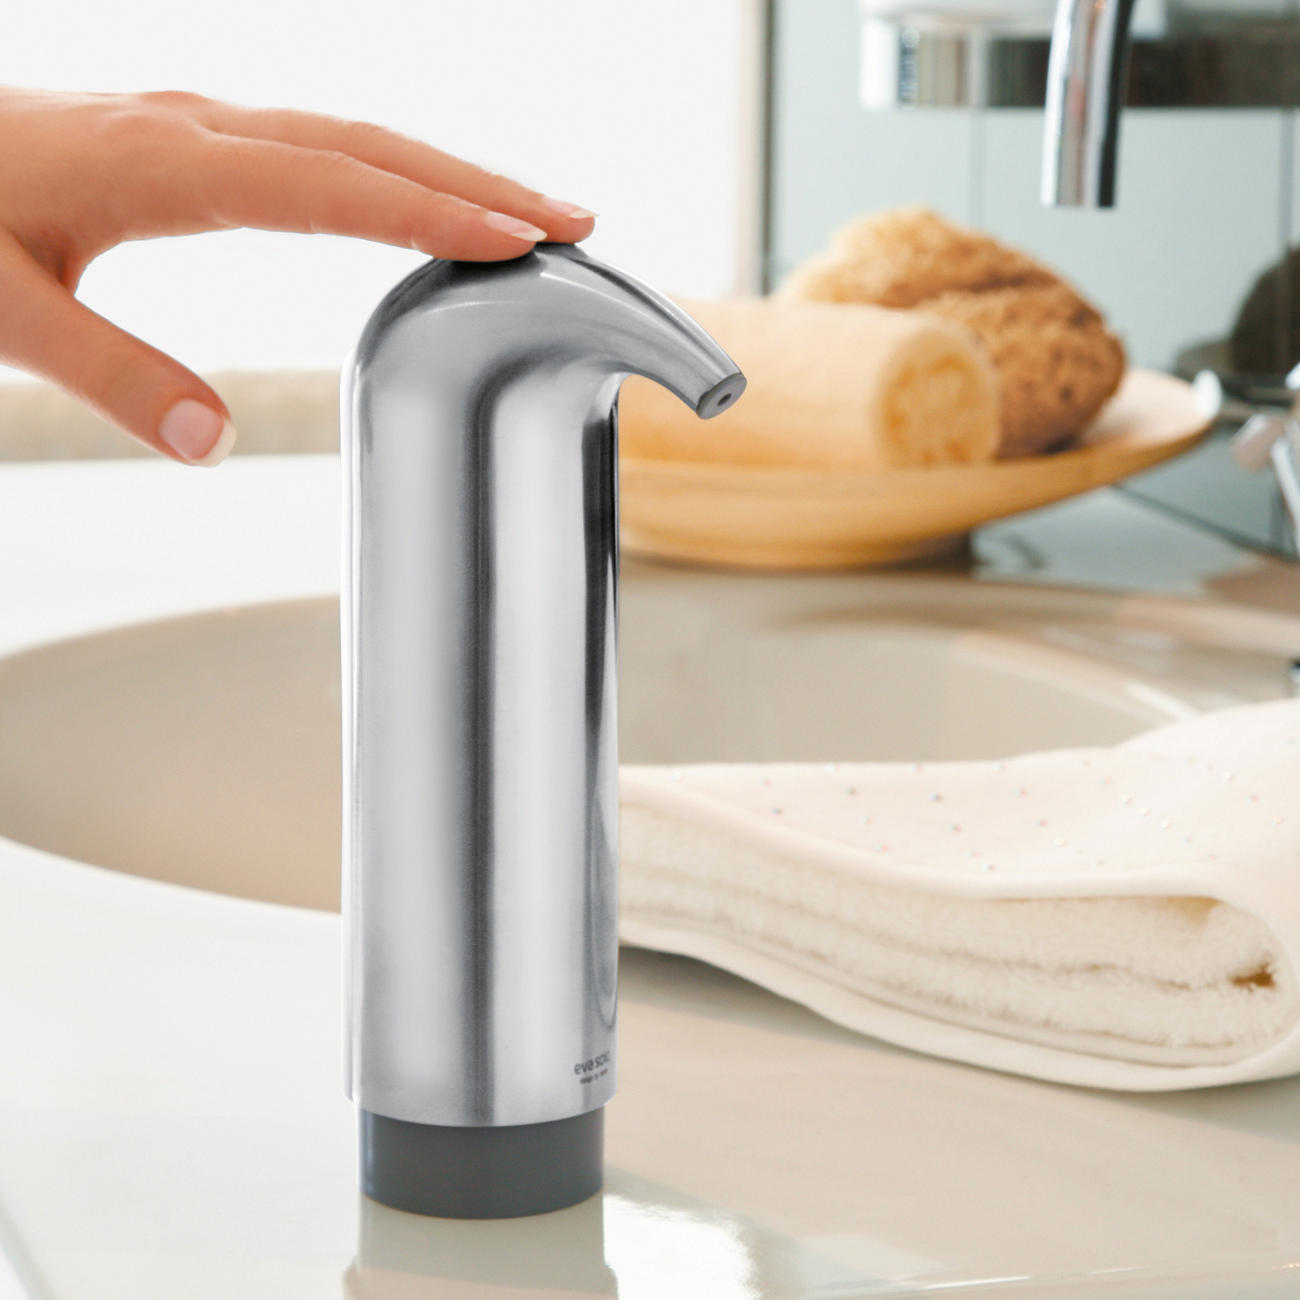 Buy Designer Soap Dispenser 3 Year Product Guarantee